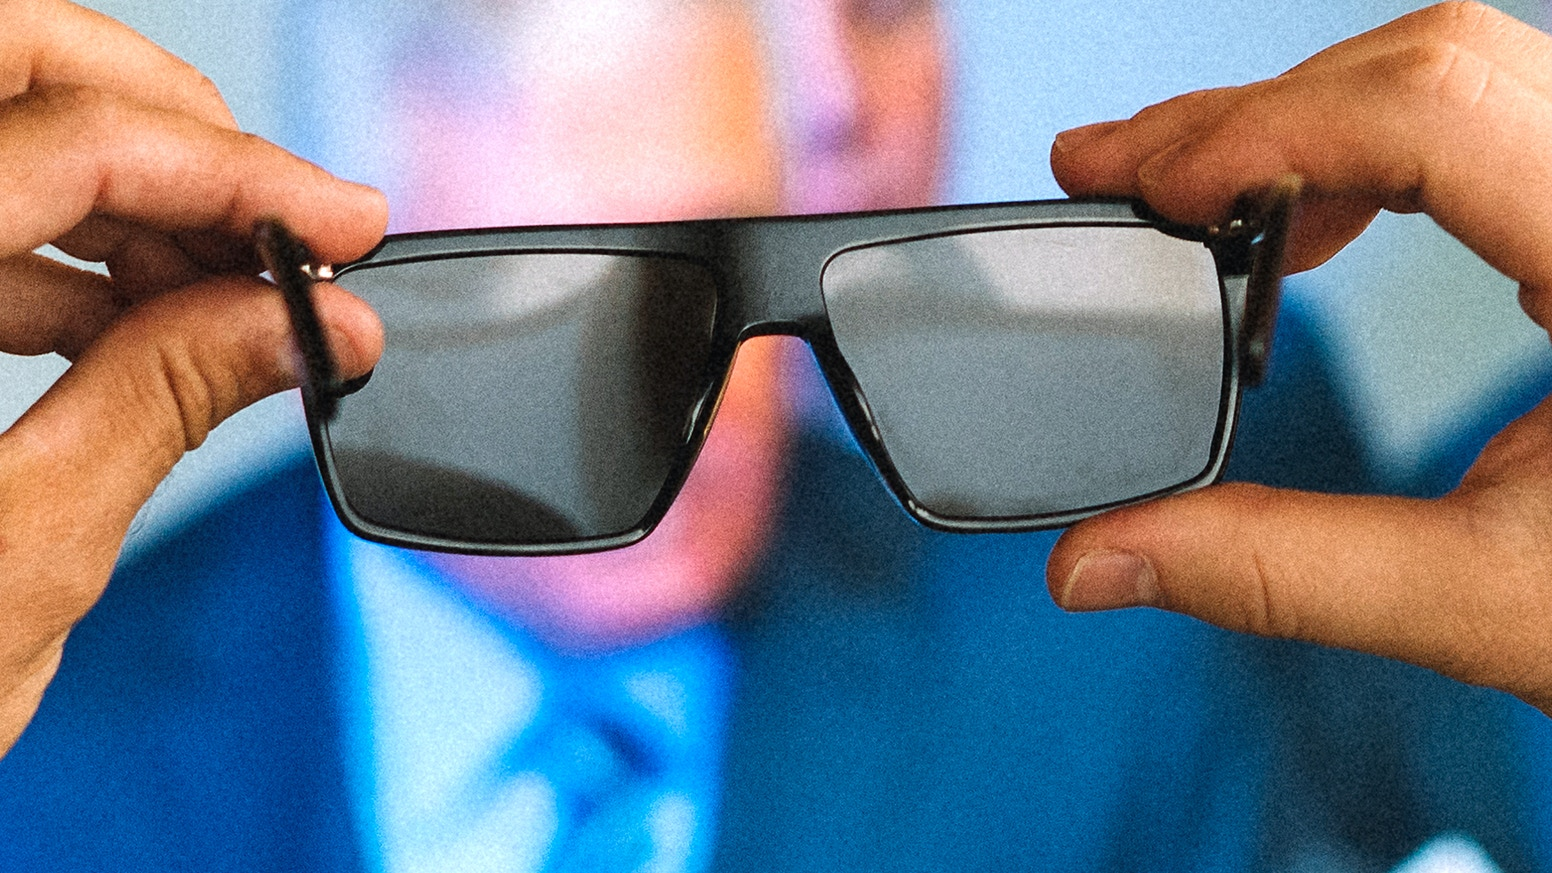 c960b2523b635 Glasses that allow you to live IRL (In Real Life) and see everything except